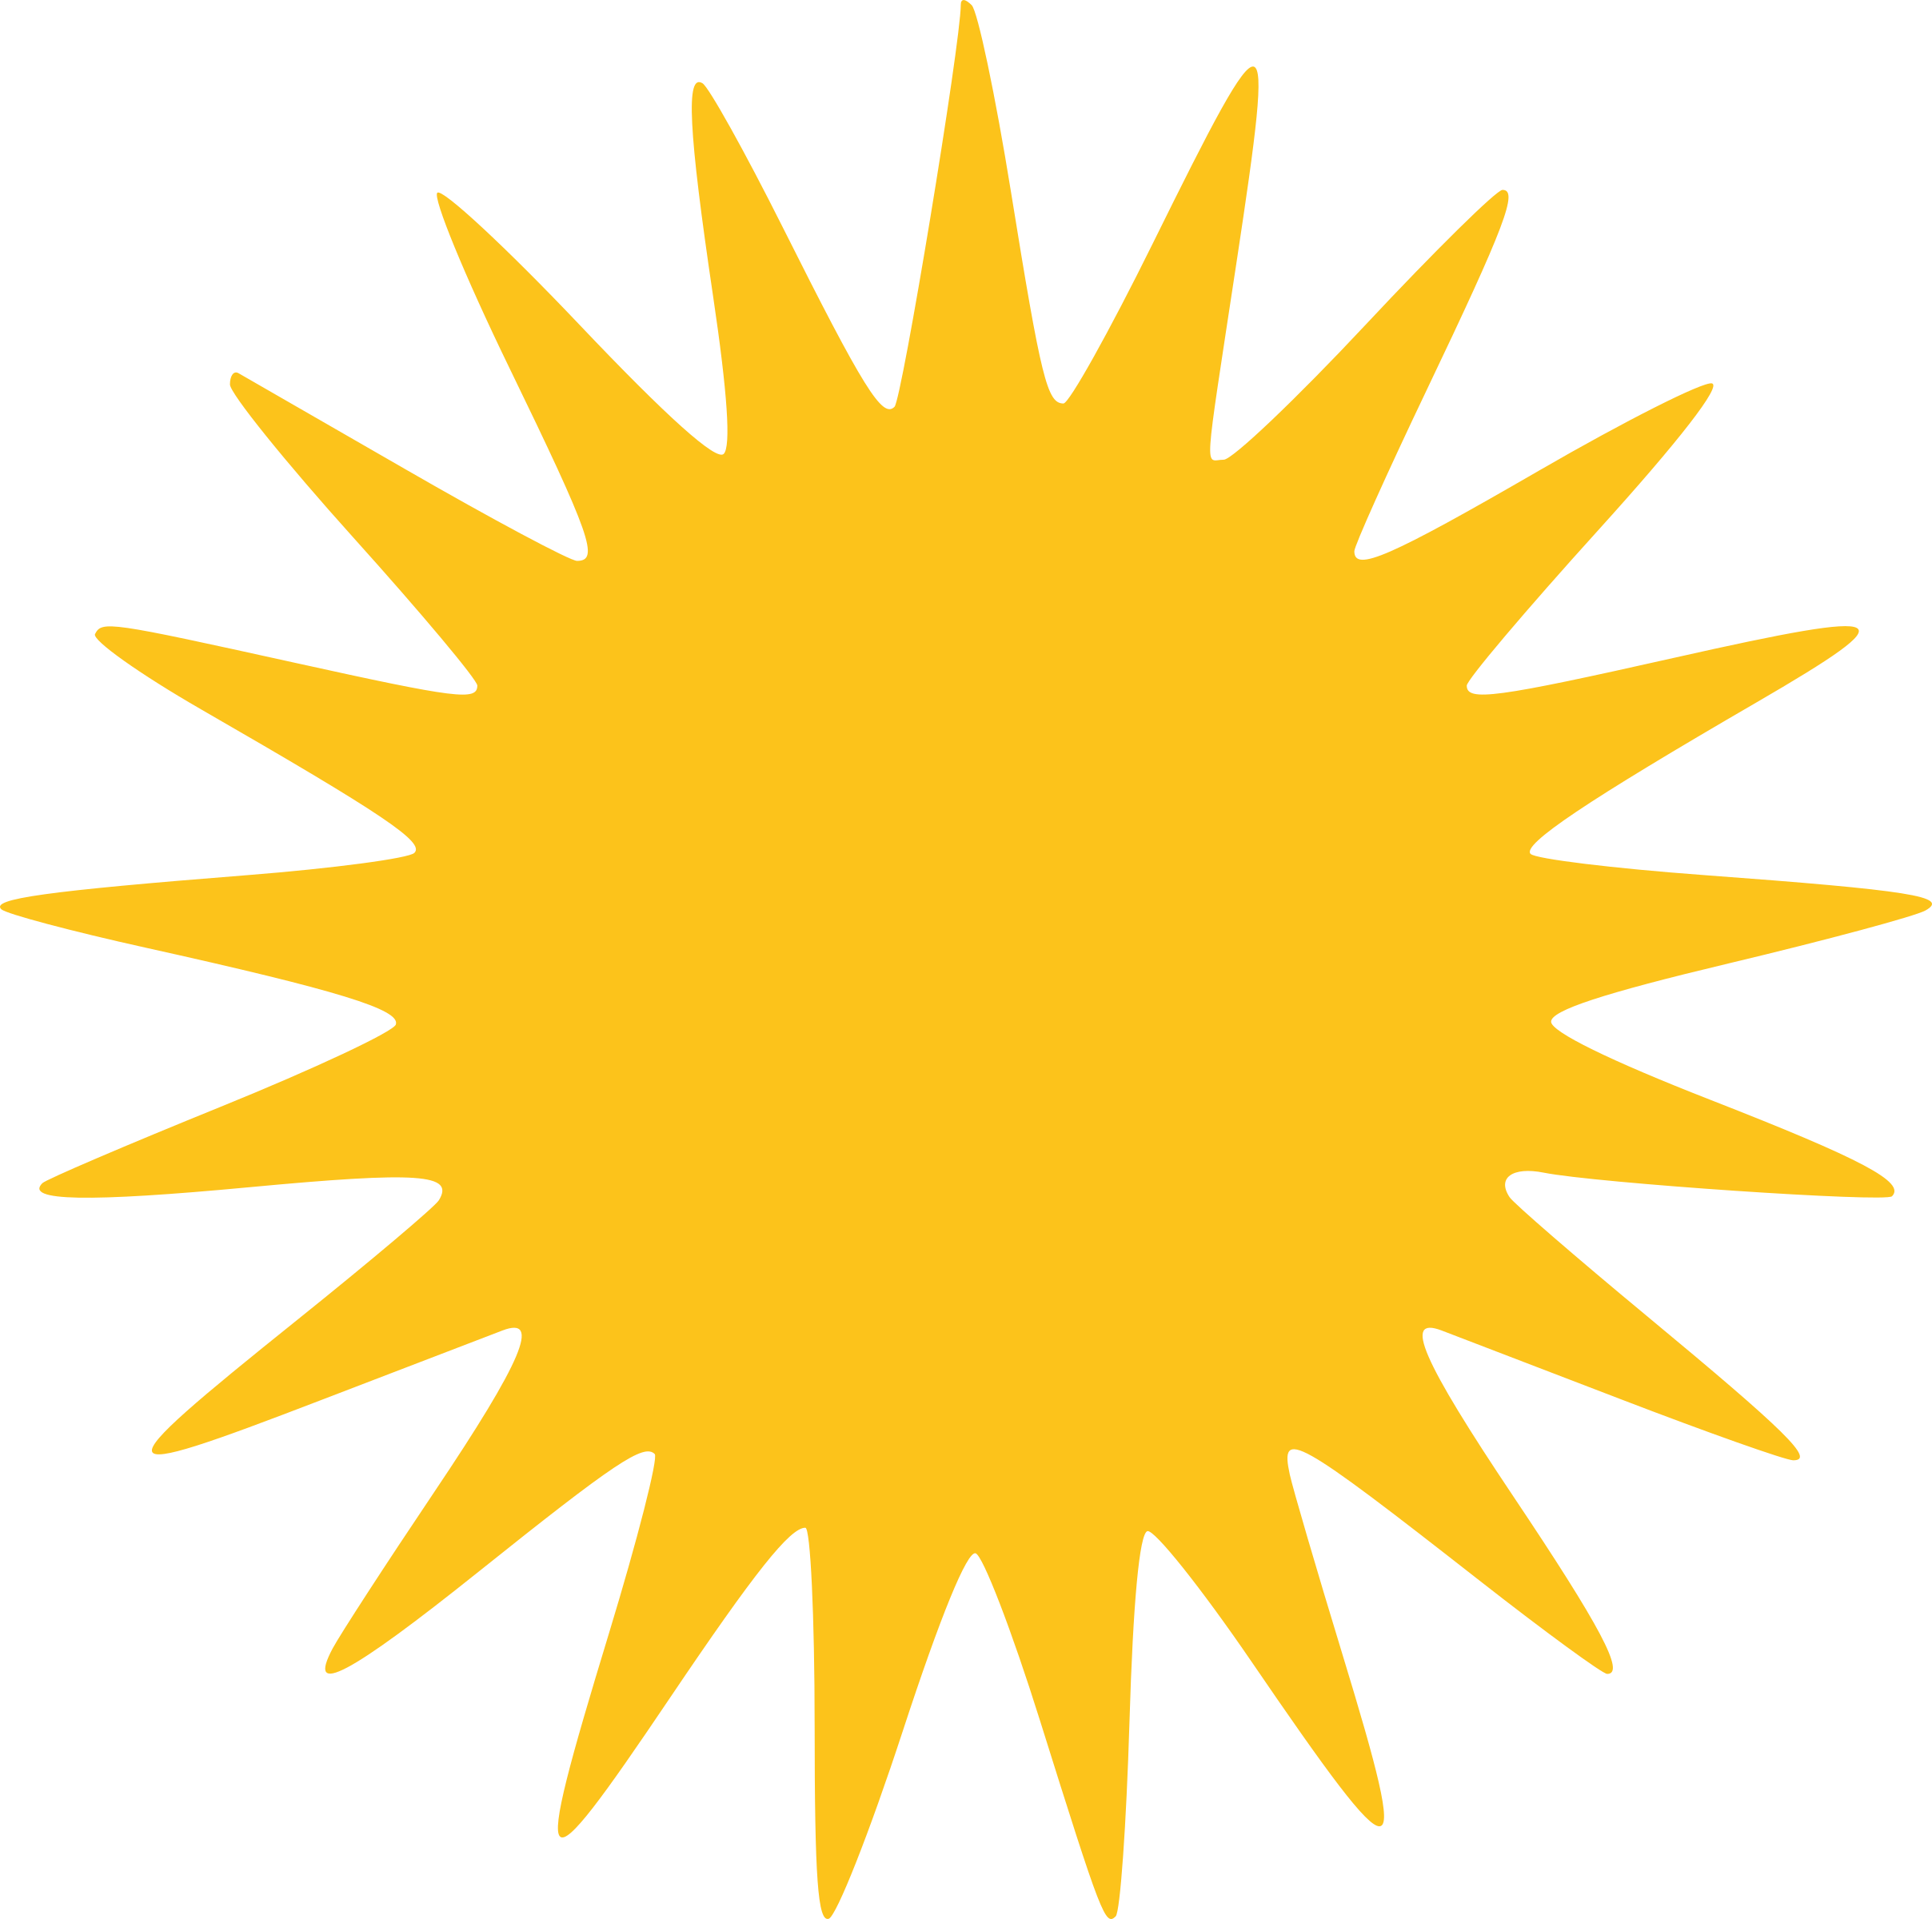 Sun clipart with big rays picture freeuse download Clipart - Yazidi Sun 21 Rays picture freeuse download